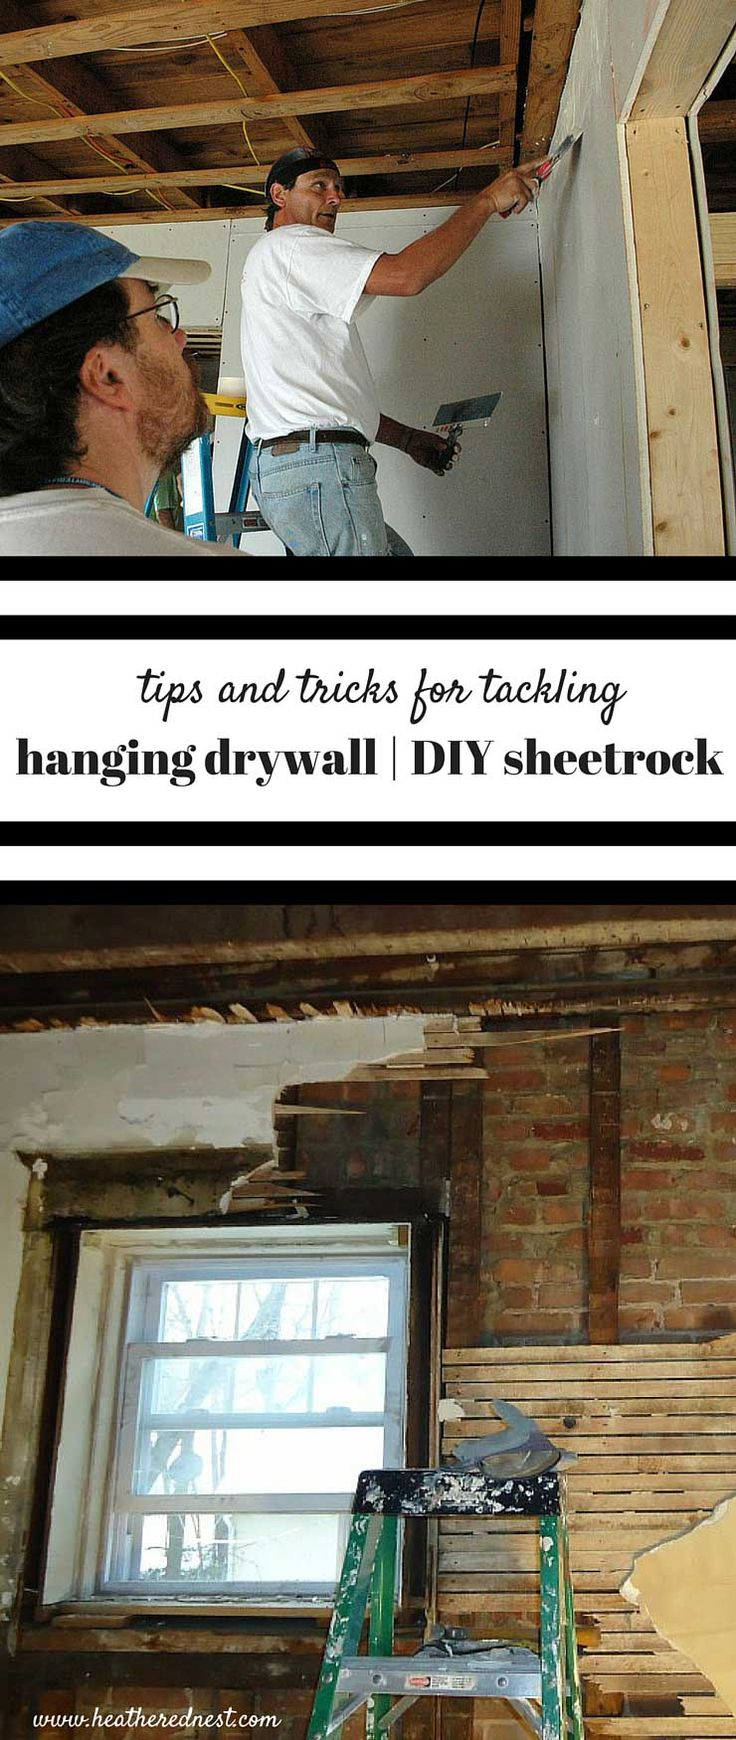 How to hang drywall on walls - Hanging Drywall Diy Sheetrock Is A Great Way To Save Money On Your Next Big